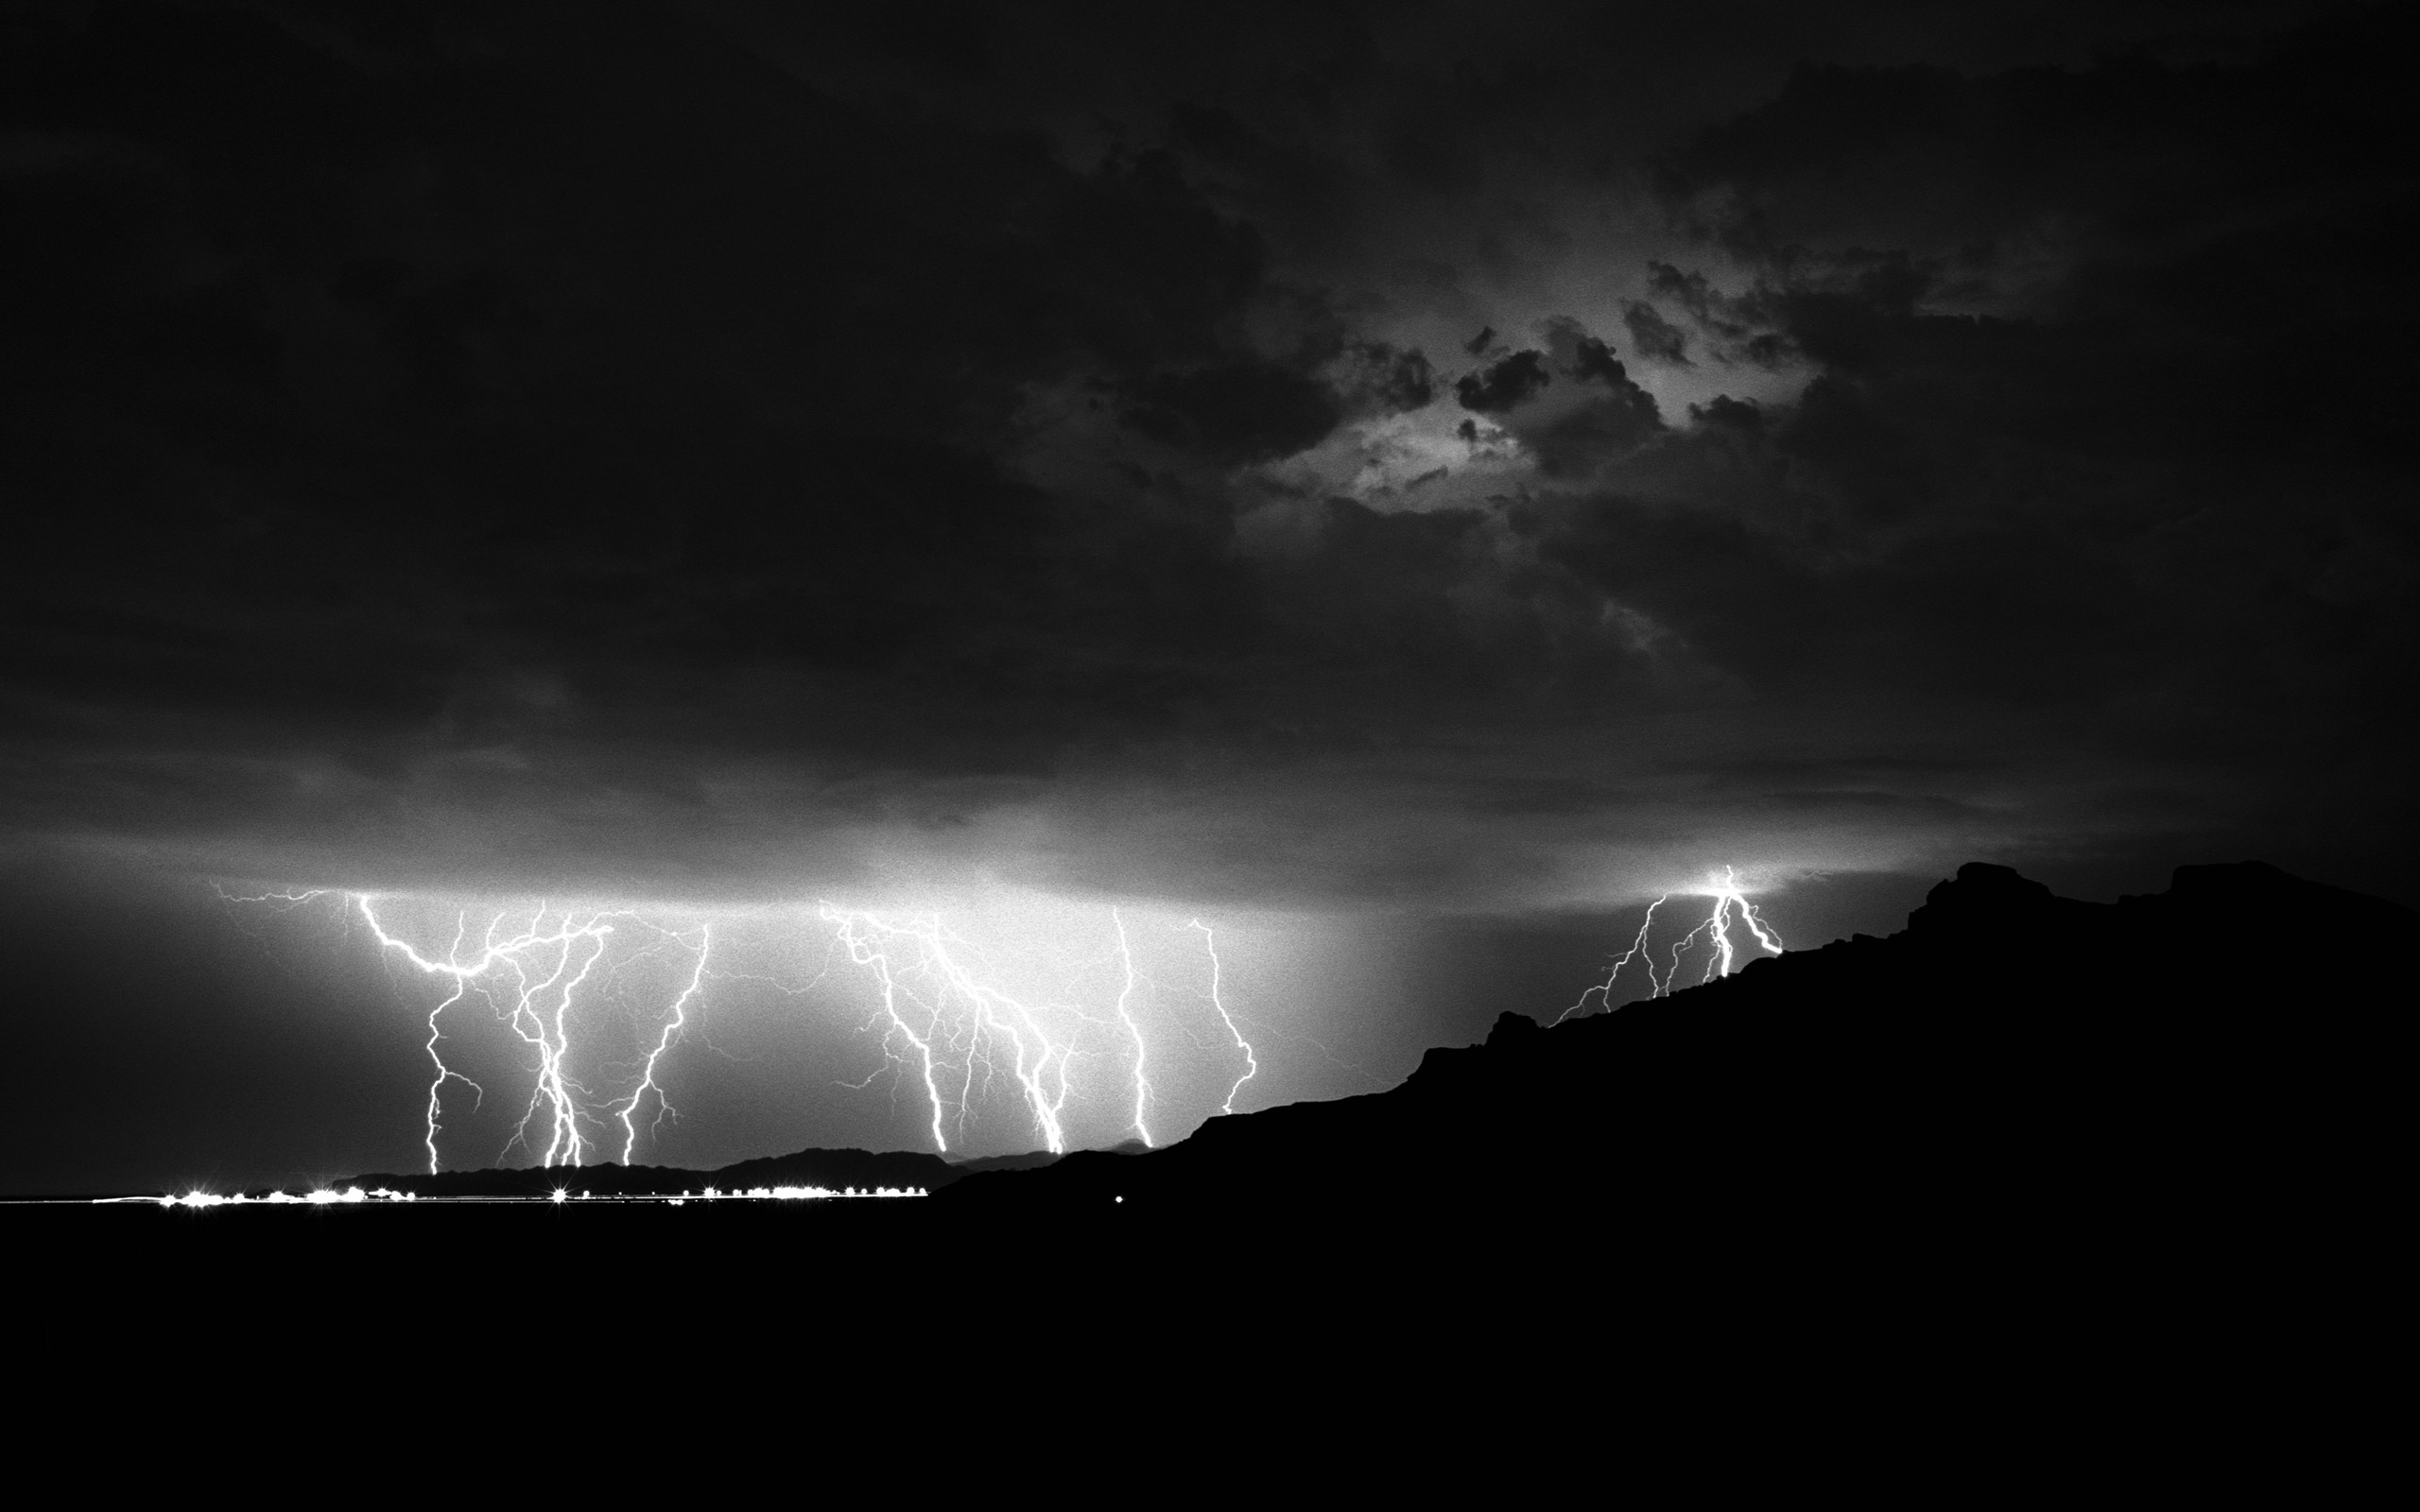 Black and White Lightning Wallpaper 2560x1600